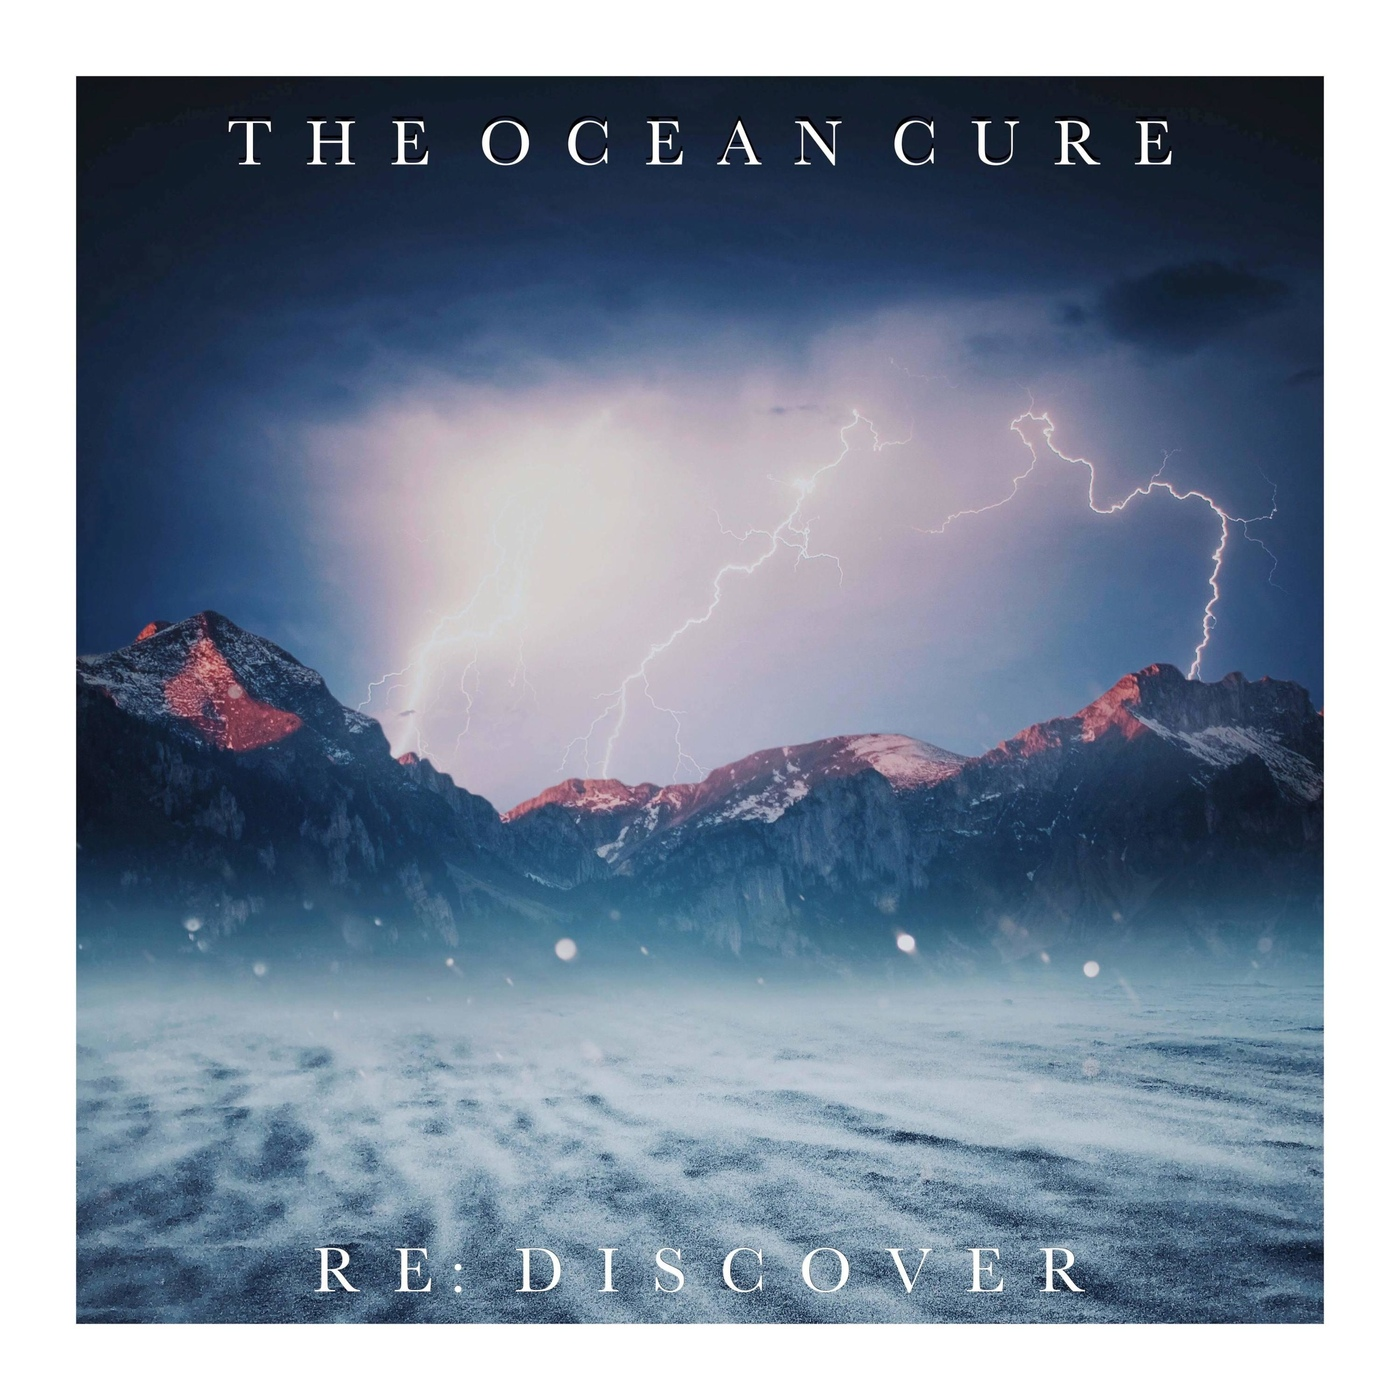 The Ocean Cure - Huntress [Single] (2019)